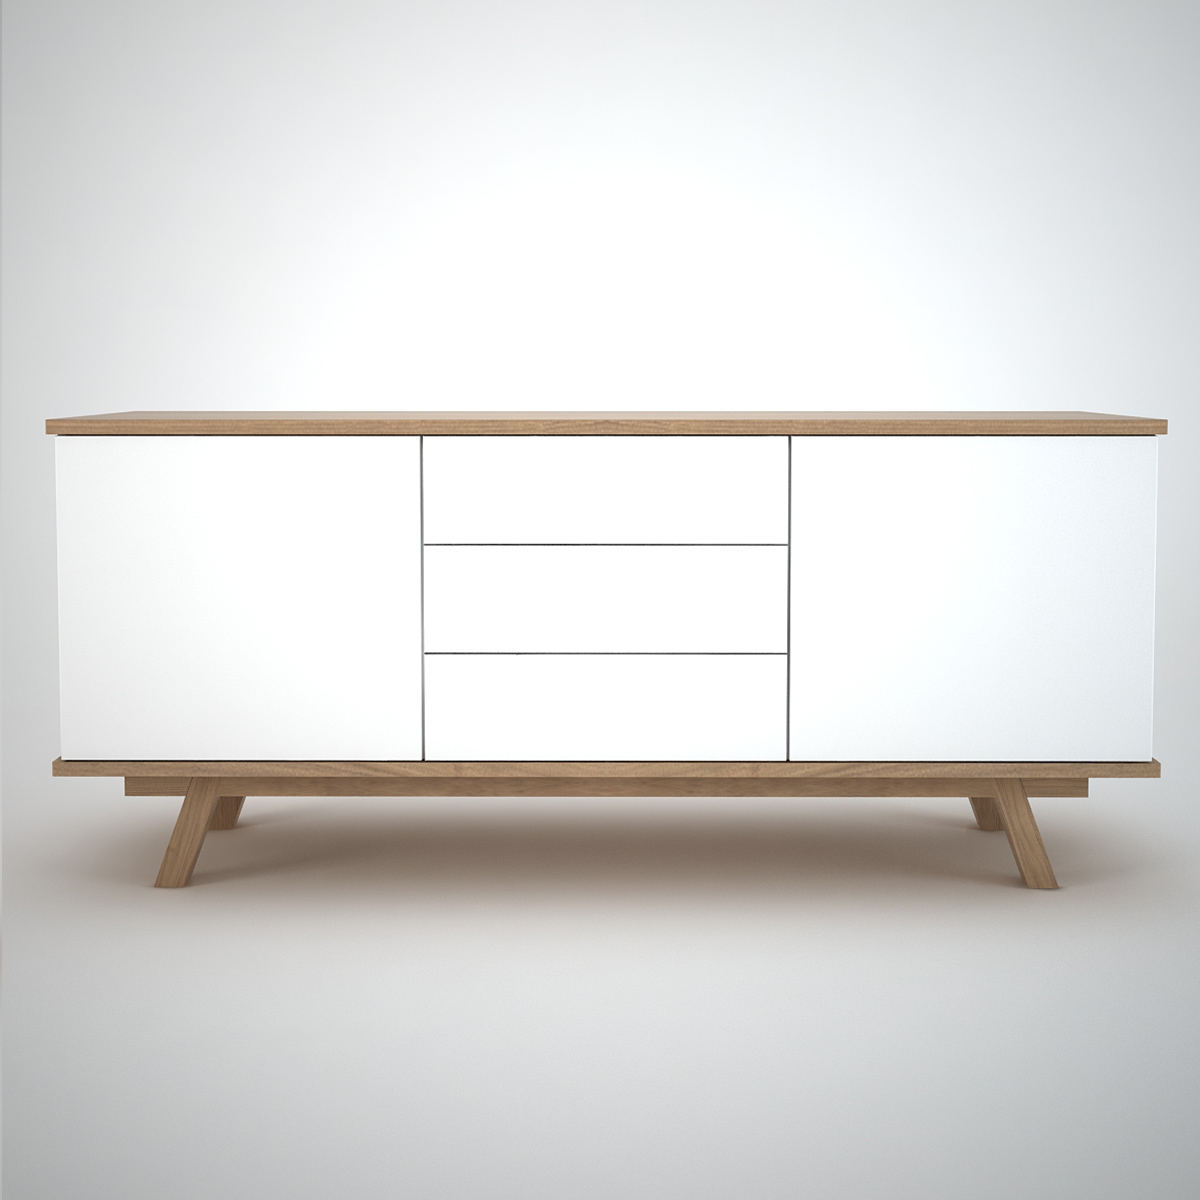 ottawa sideboard () white  join furniture - contemporary sideboard in white and oak